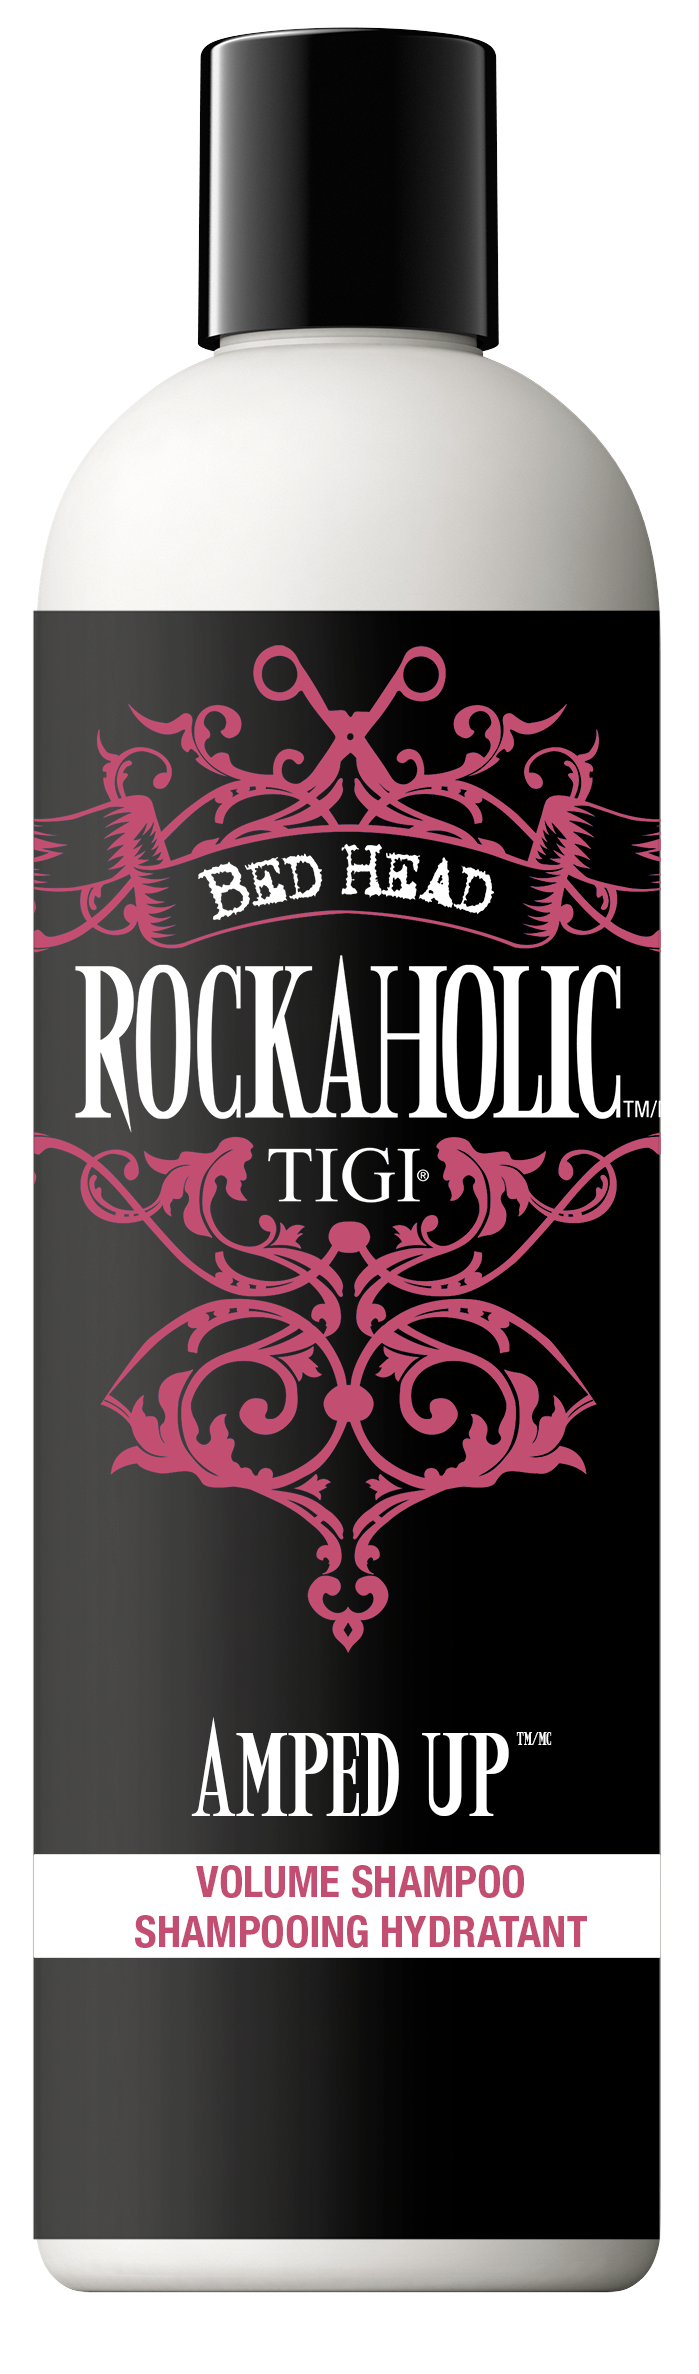 TIGI BED HEAD Rockaholic Amped Up Volume Shampoo Шампунь для объёма (355 ml) 67150911